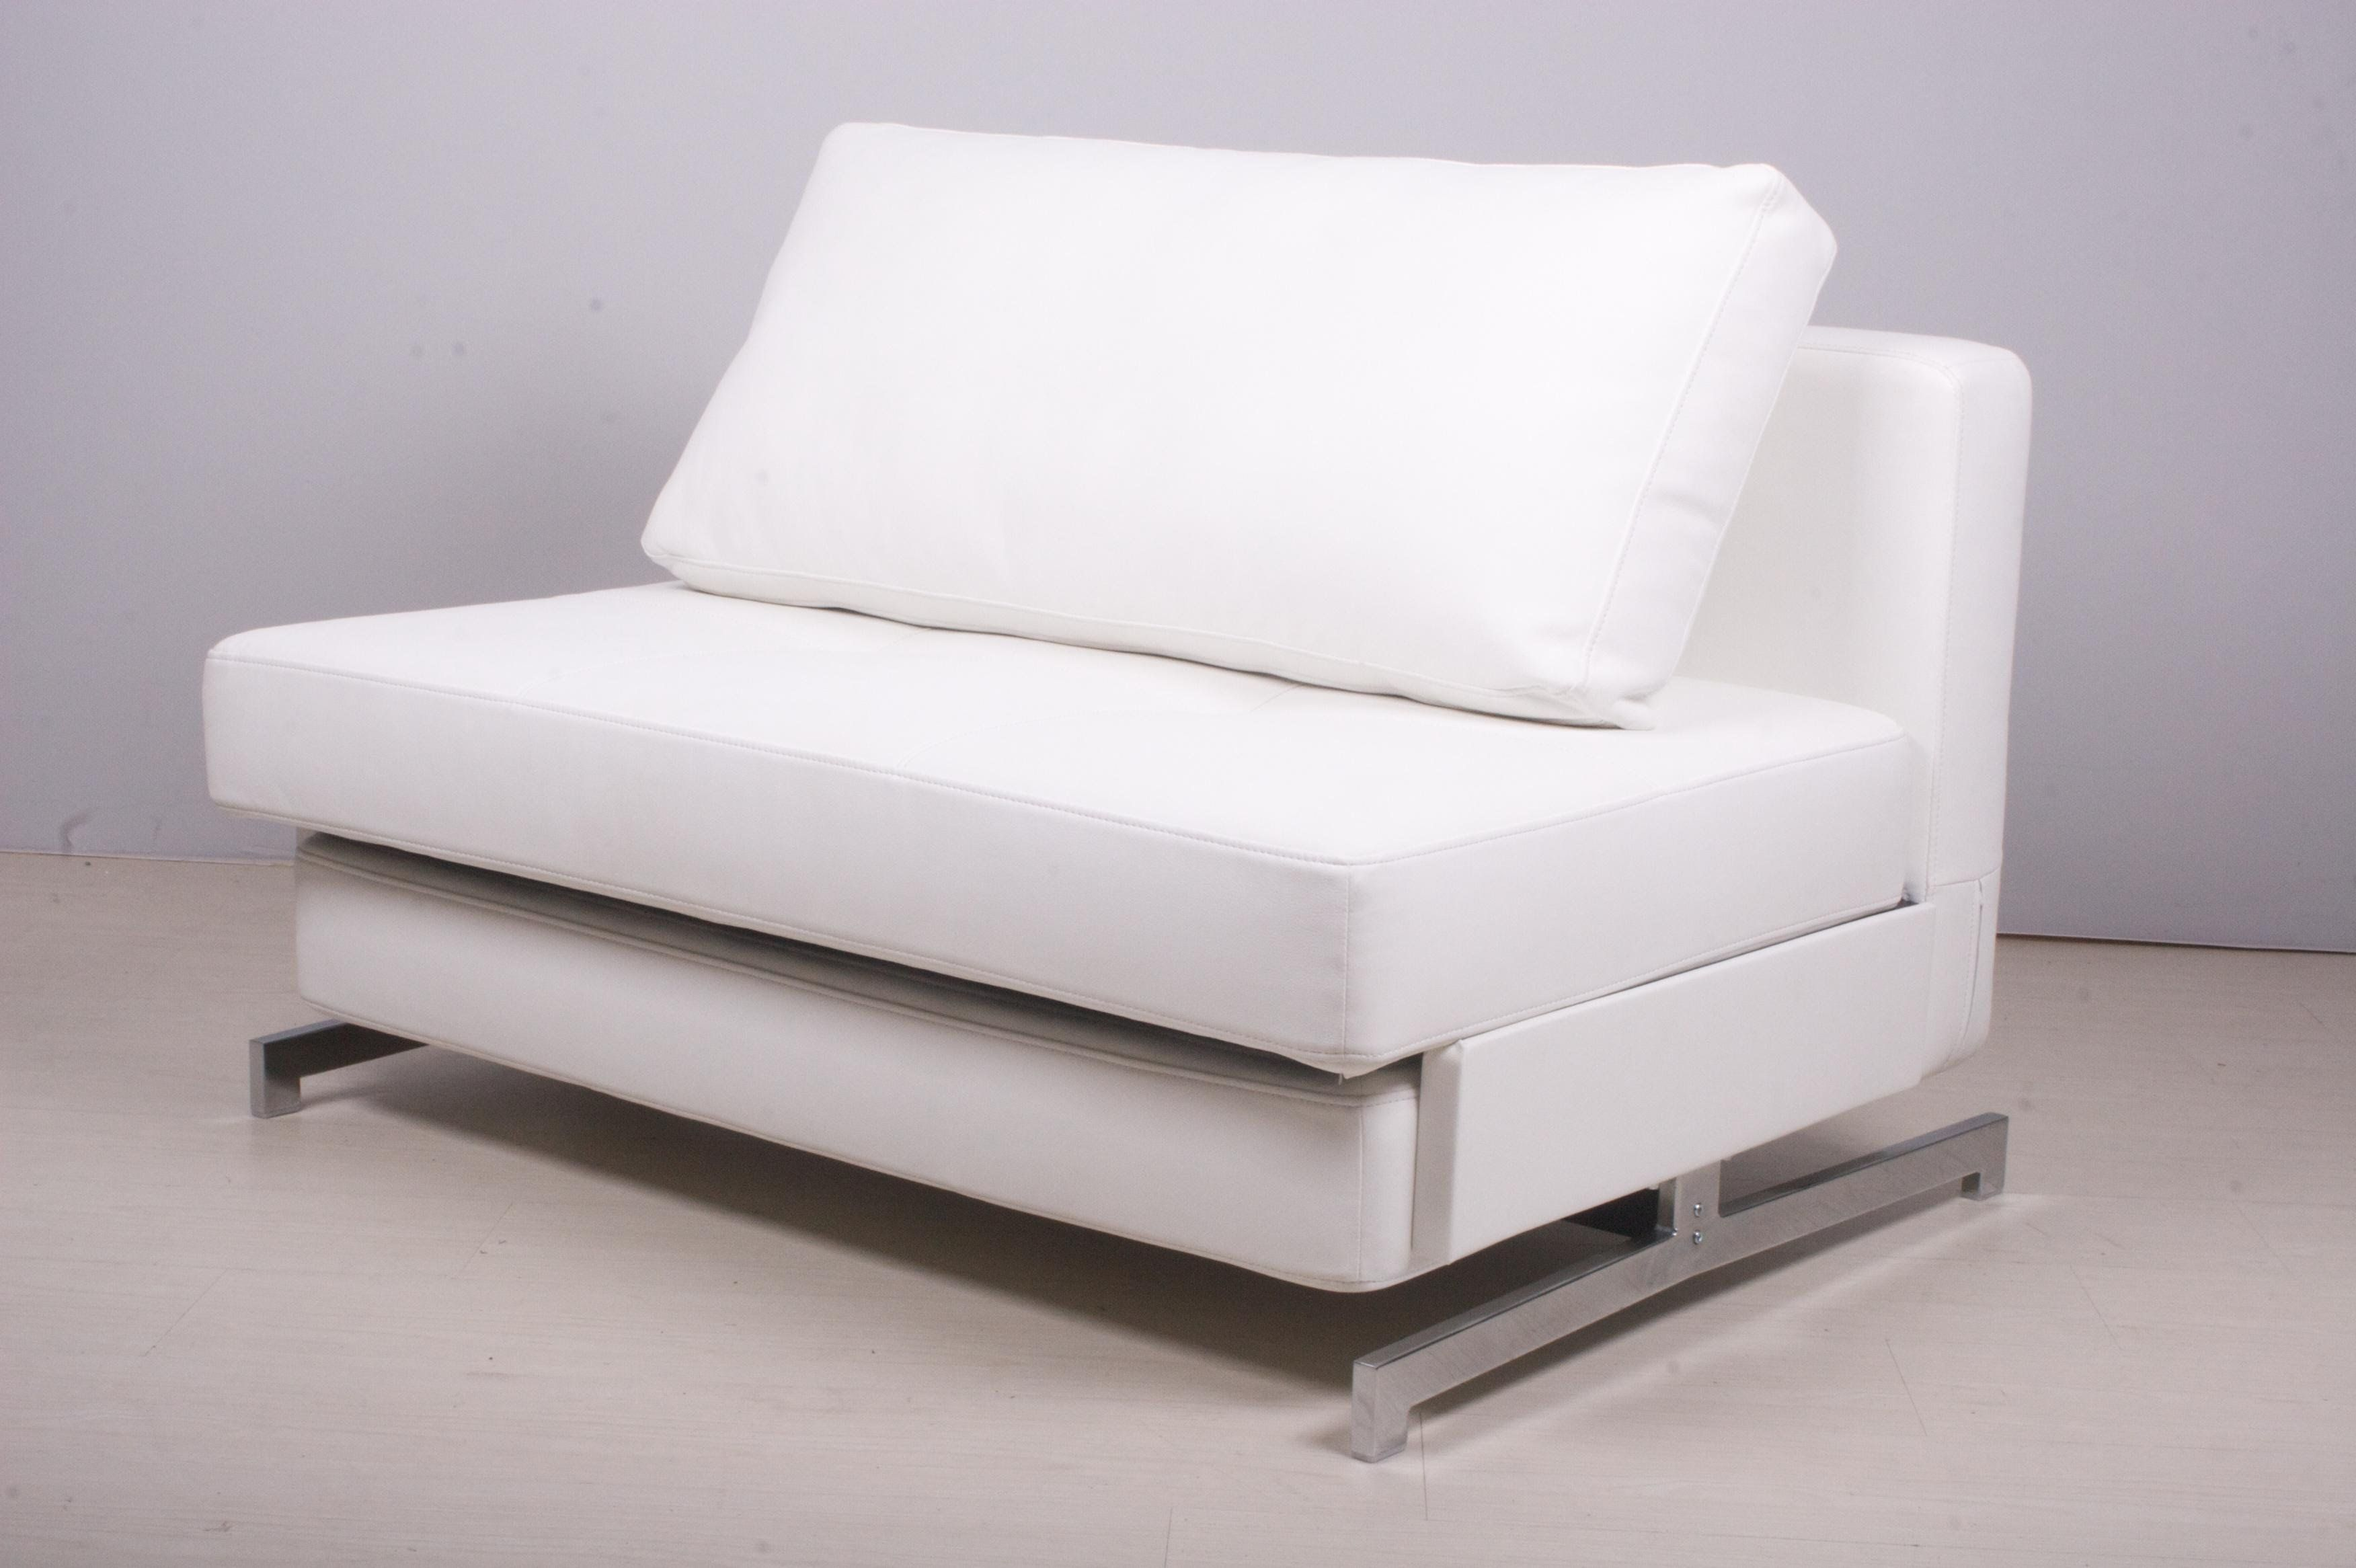 Awesome Sofa White Leather , Fancy Sofa White Leather 49 In Modern Sofa  Ideas With Sofa